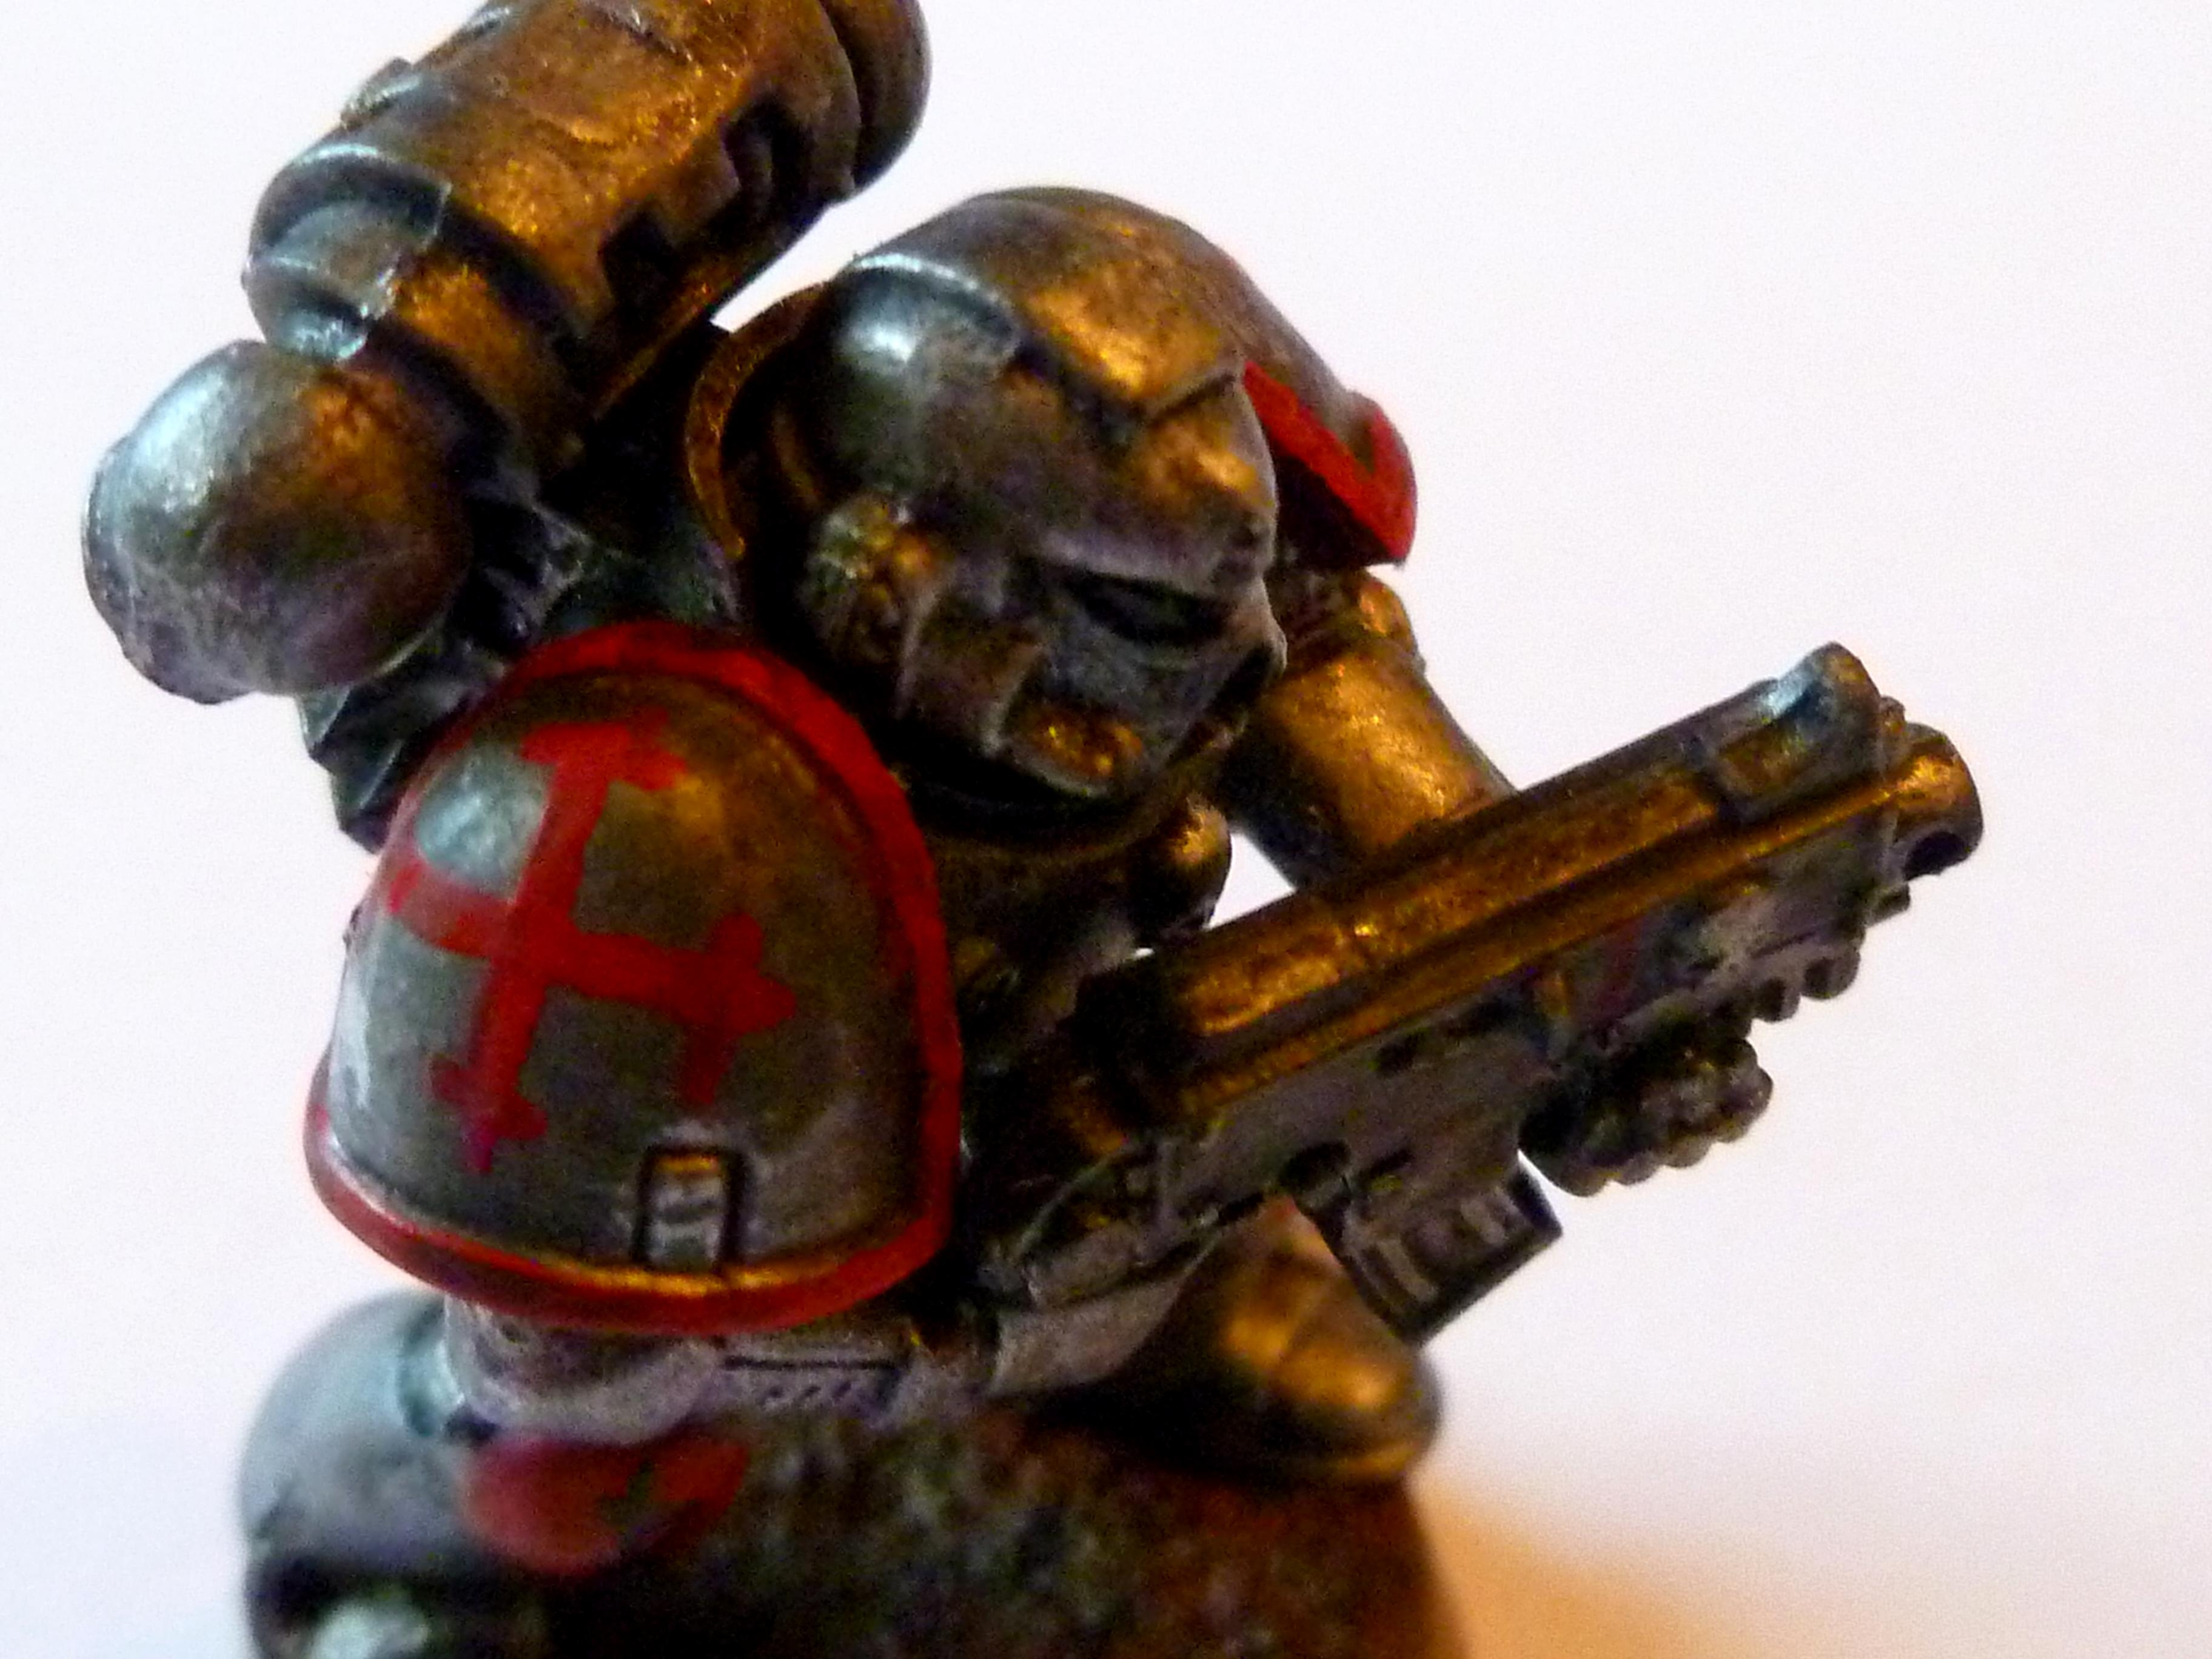 Badab, Badab War, Chapters, Fire Angels, Fire Angles, Space Marine Chapters, Space Marines